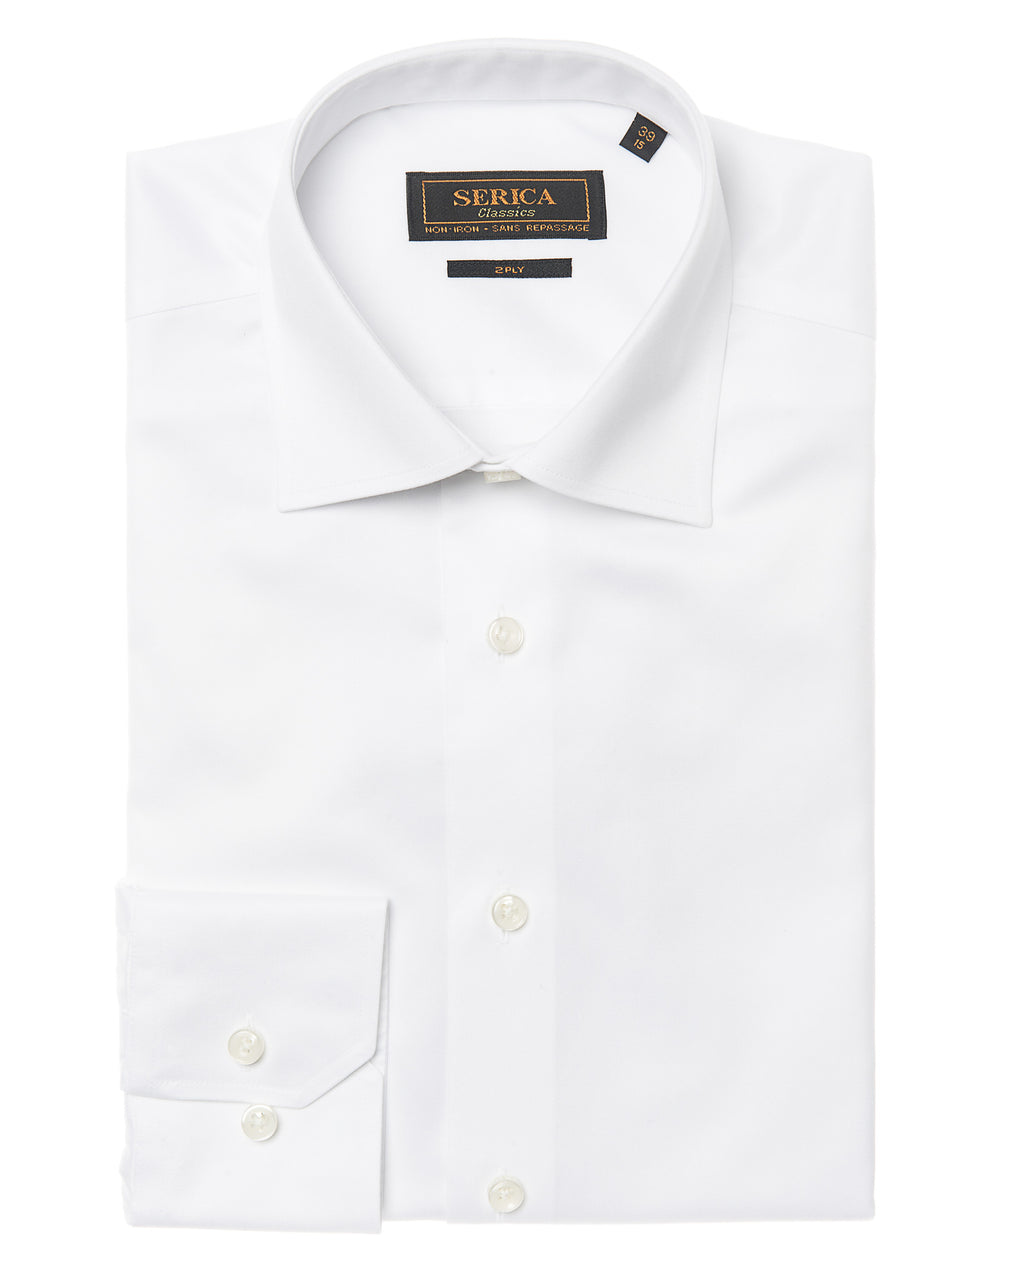 White dress shirt with button cuffs